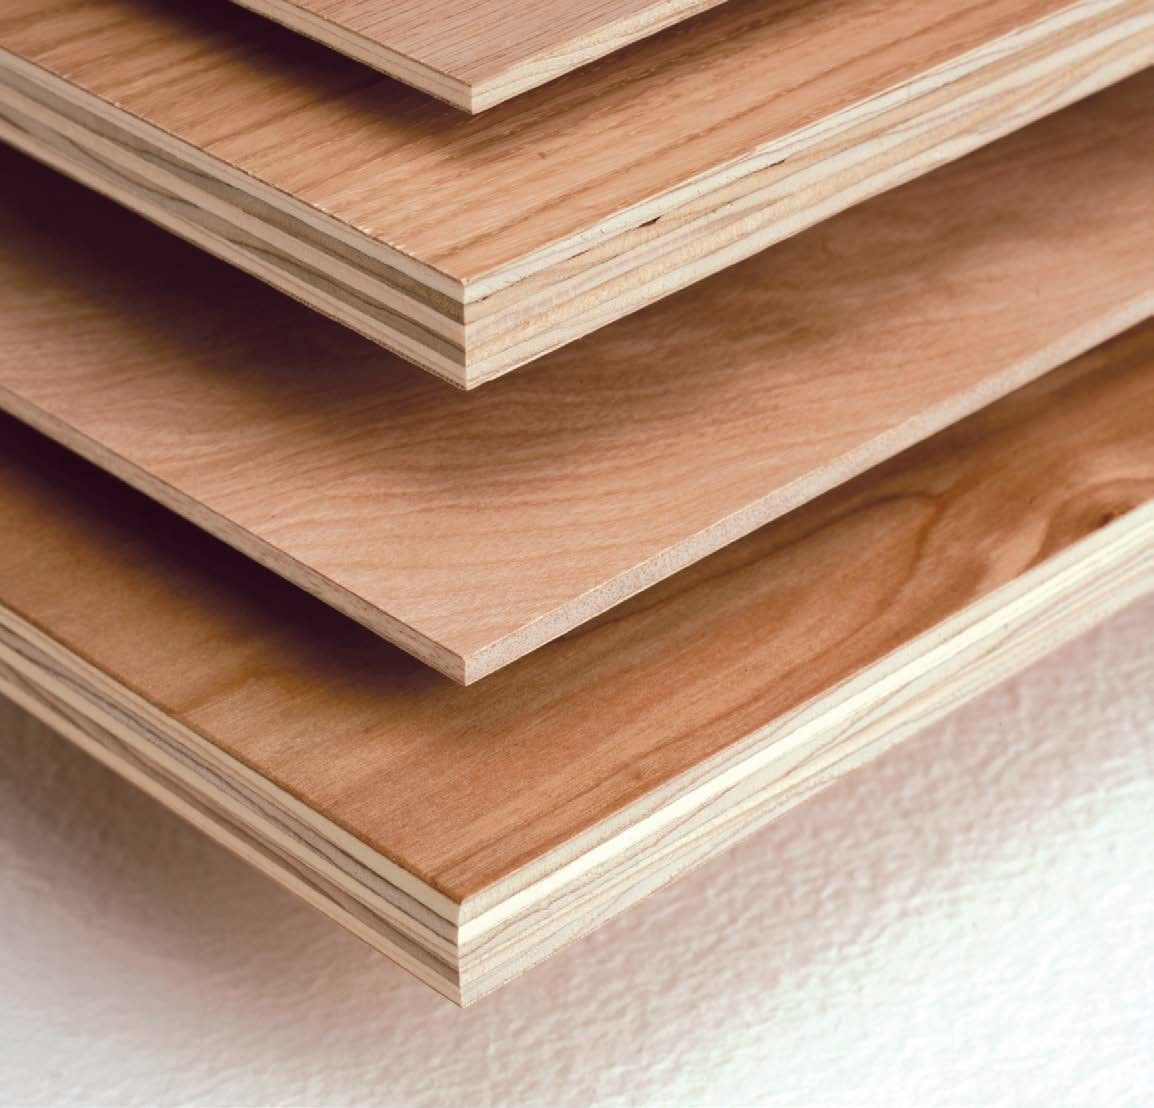 Choosing The Best Type Of Plywood For Cabinets Columbia Forest Products Types Of Plywood Plywood Suppliers Plywood Cabinets